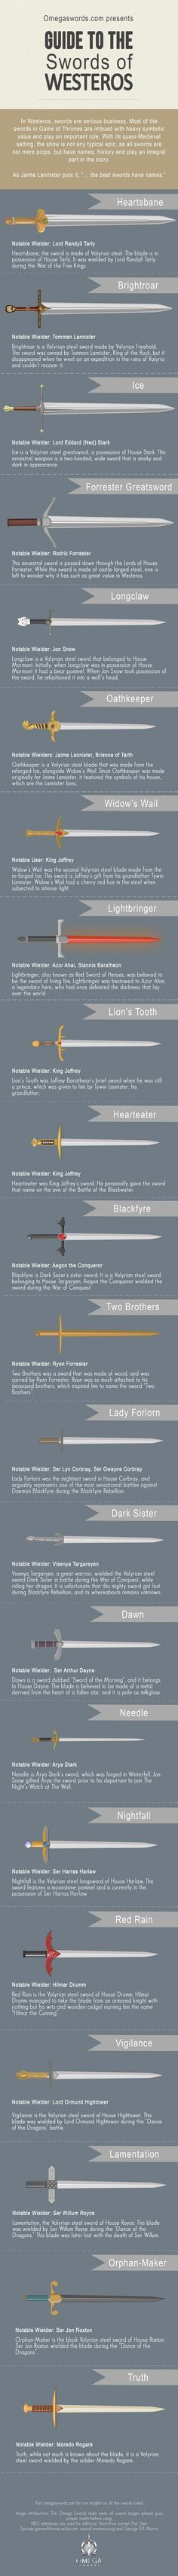 Game of Thrones Sword Guide - One correction: Lord Mormont fashioned Longclaw into a wolf's head before he gave it to Jon. Also, Joffery had three different swords, he should really learn to keep them.